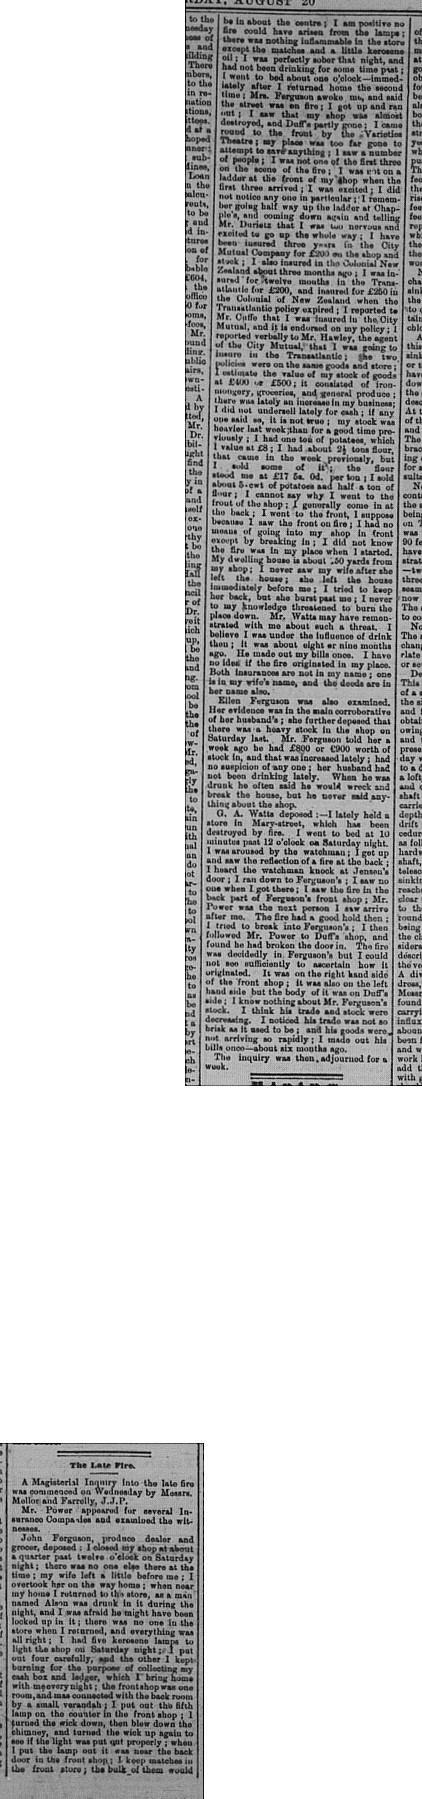 Gympie Times, Saturday, August 20, 1881 p. 2 Inquest into fire